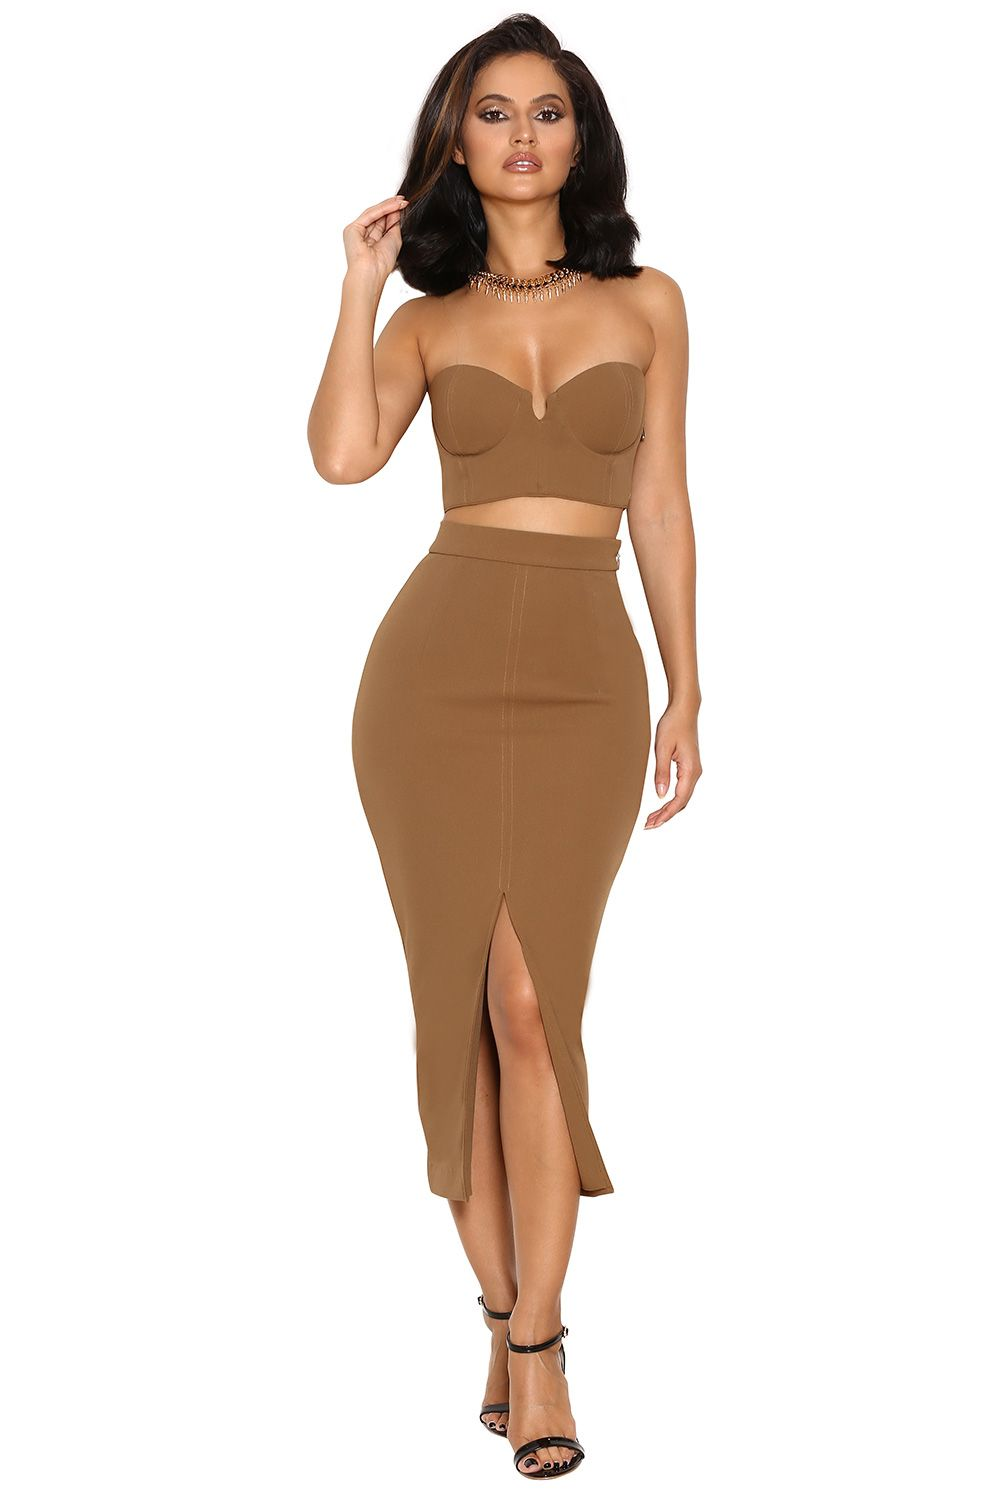 'Clothing : 2 Pieces : 'Caspiana' Camel Crepe Bustier Two Piece